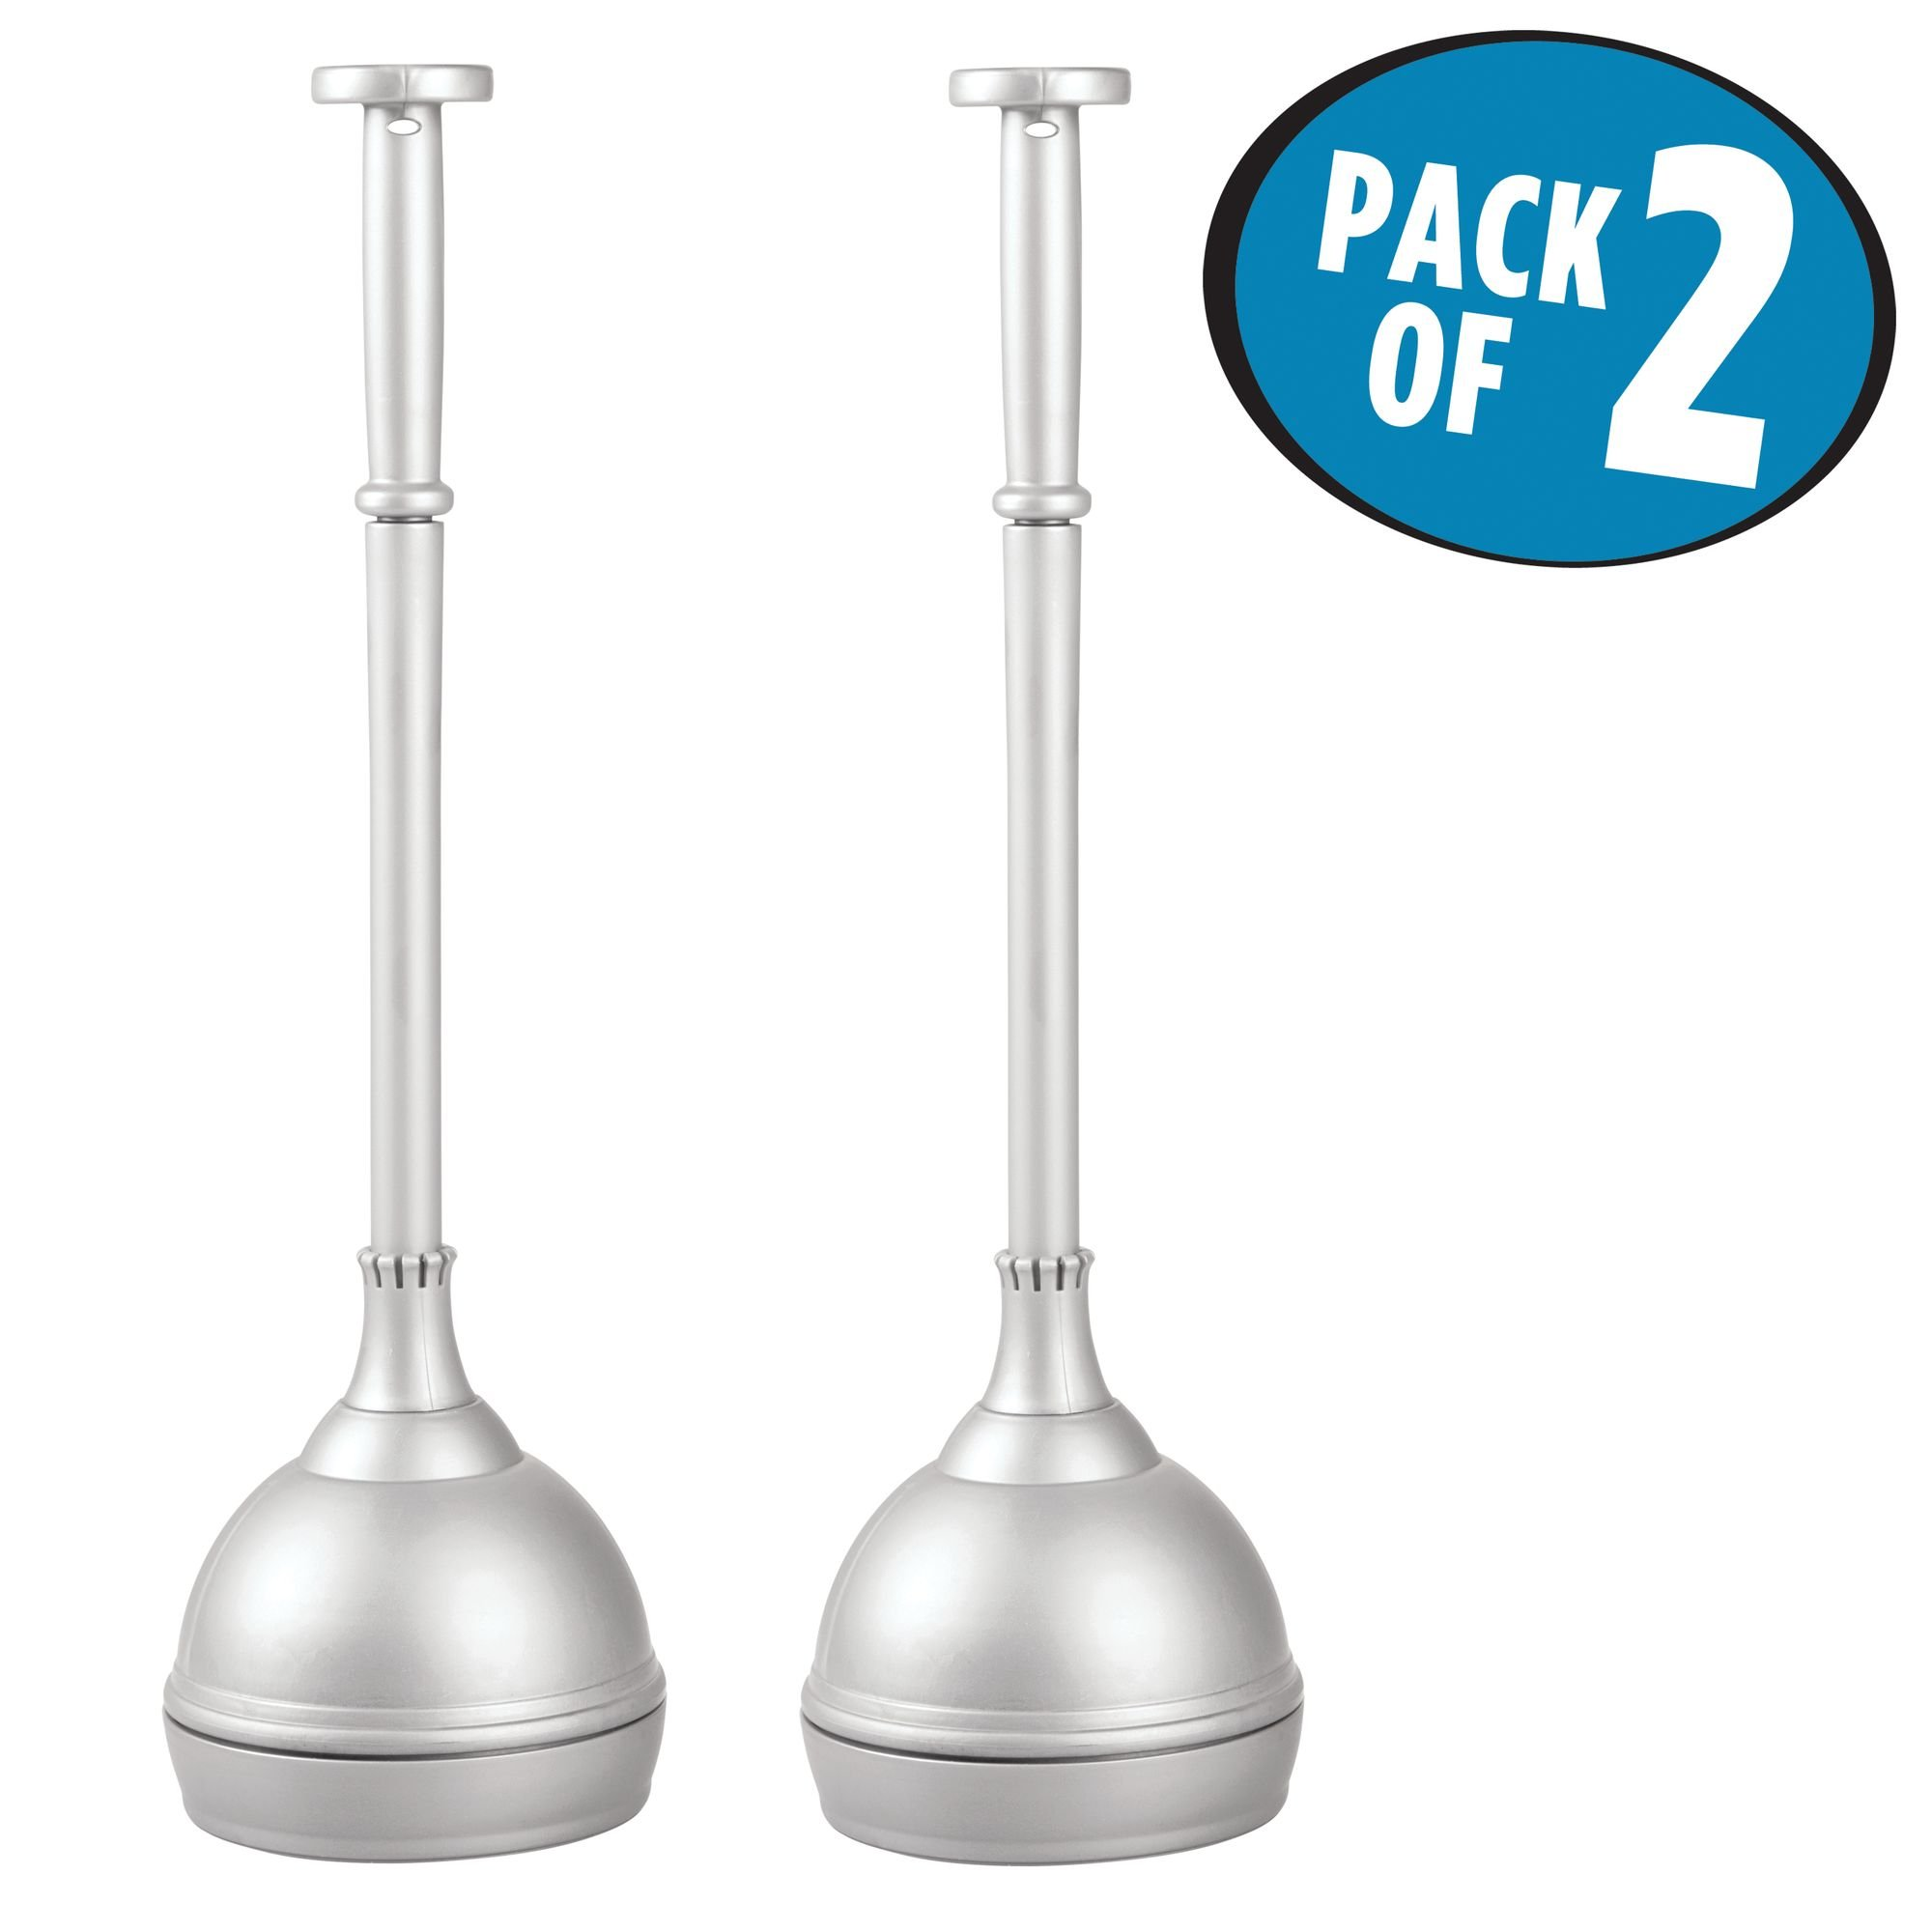 pack Bathroom Toilet Plunger with Cover by iDesign 2